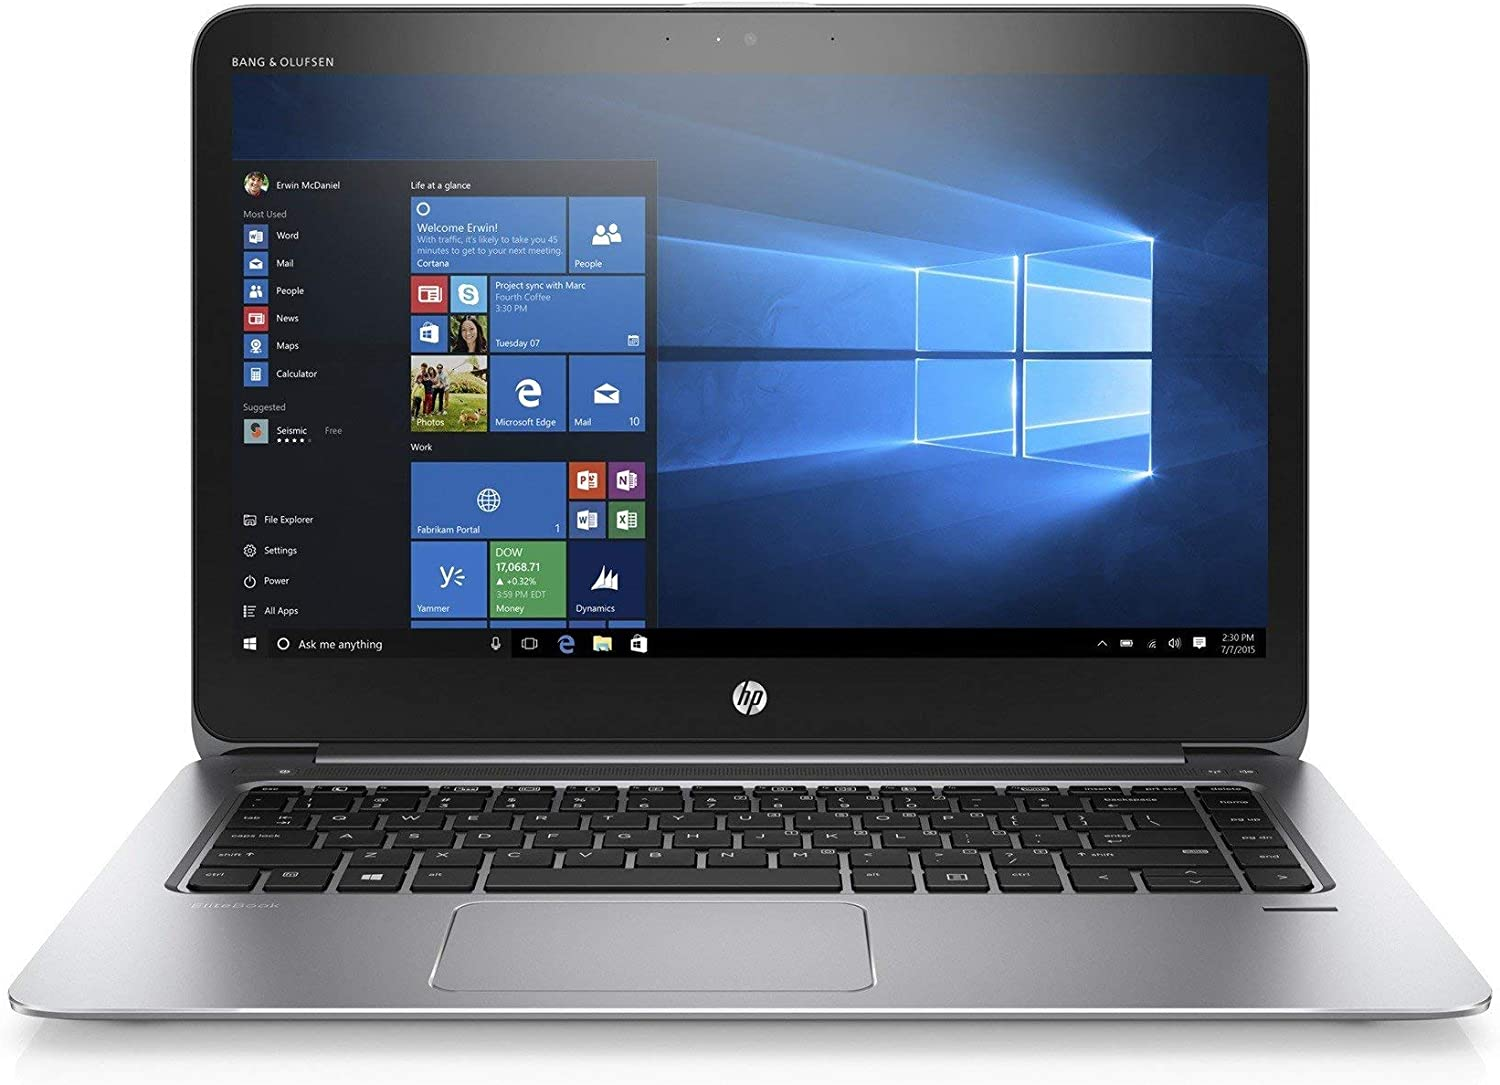 "HP EliteBook Folio 1040 G2 14"" Laptop Intel Core i5 5300U 2.30 GHz 8Gb Ram 128G SSD Windows 10 Pro (Renewed)"